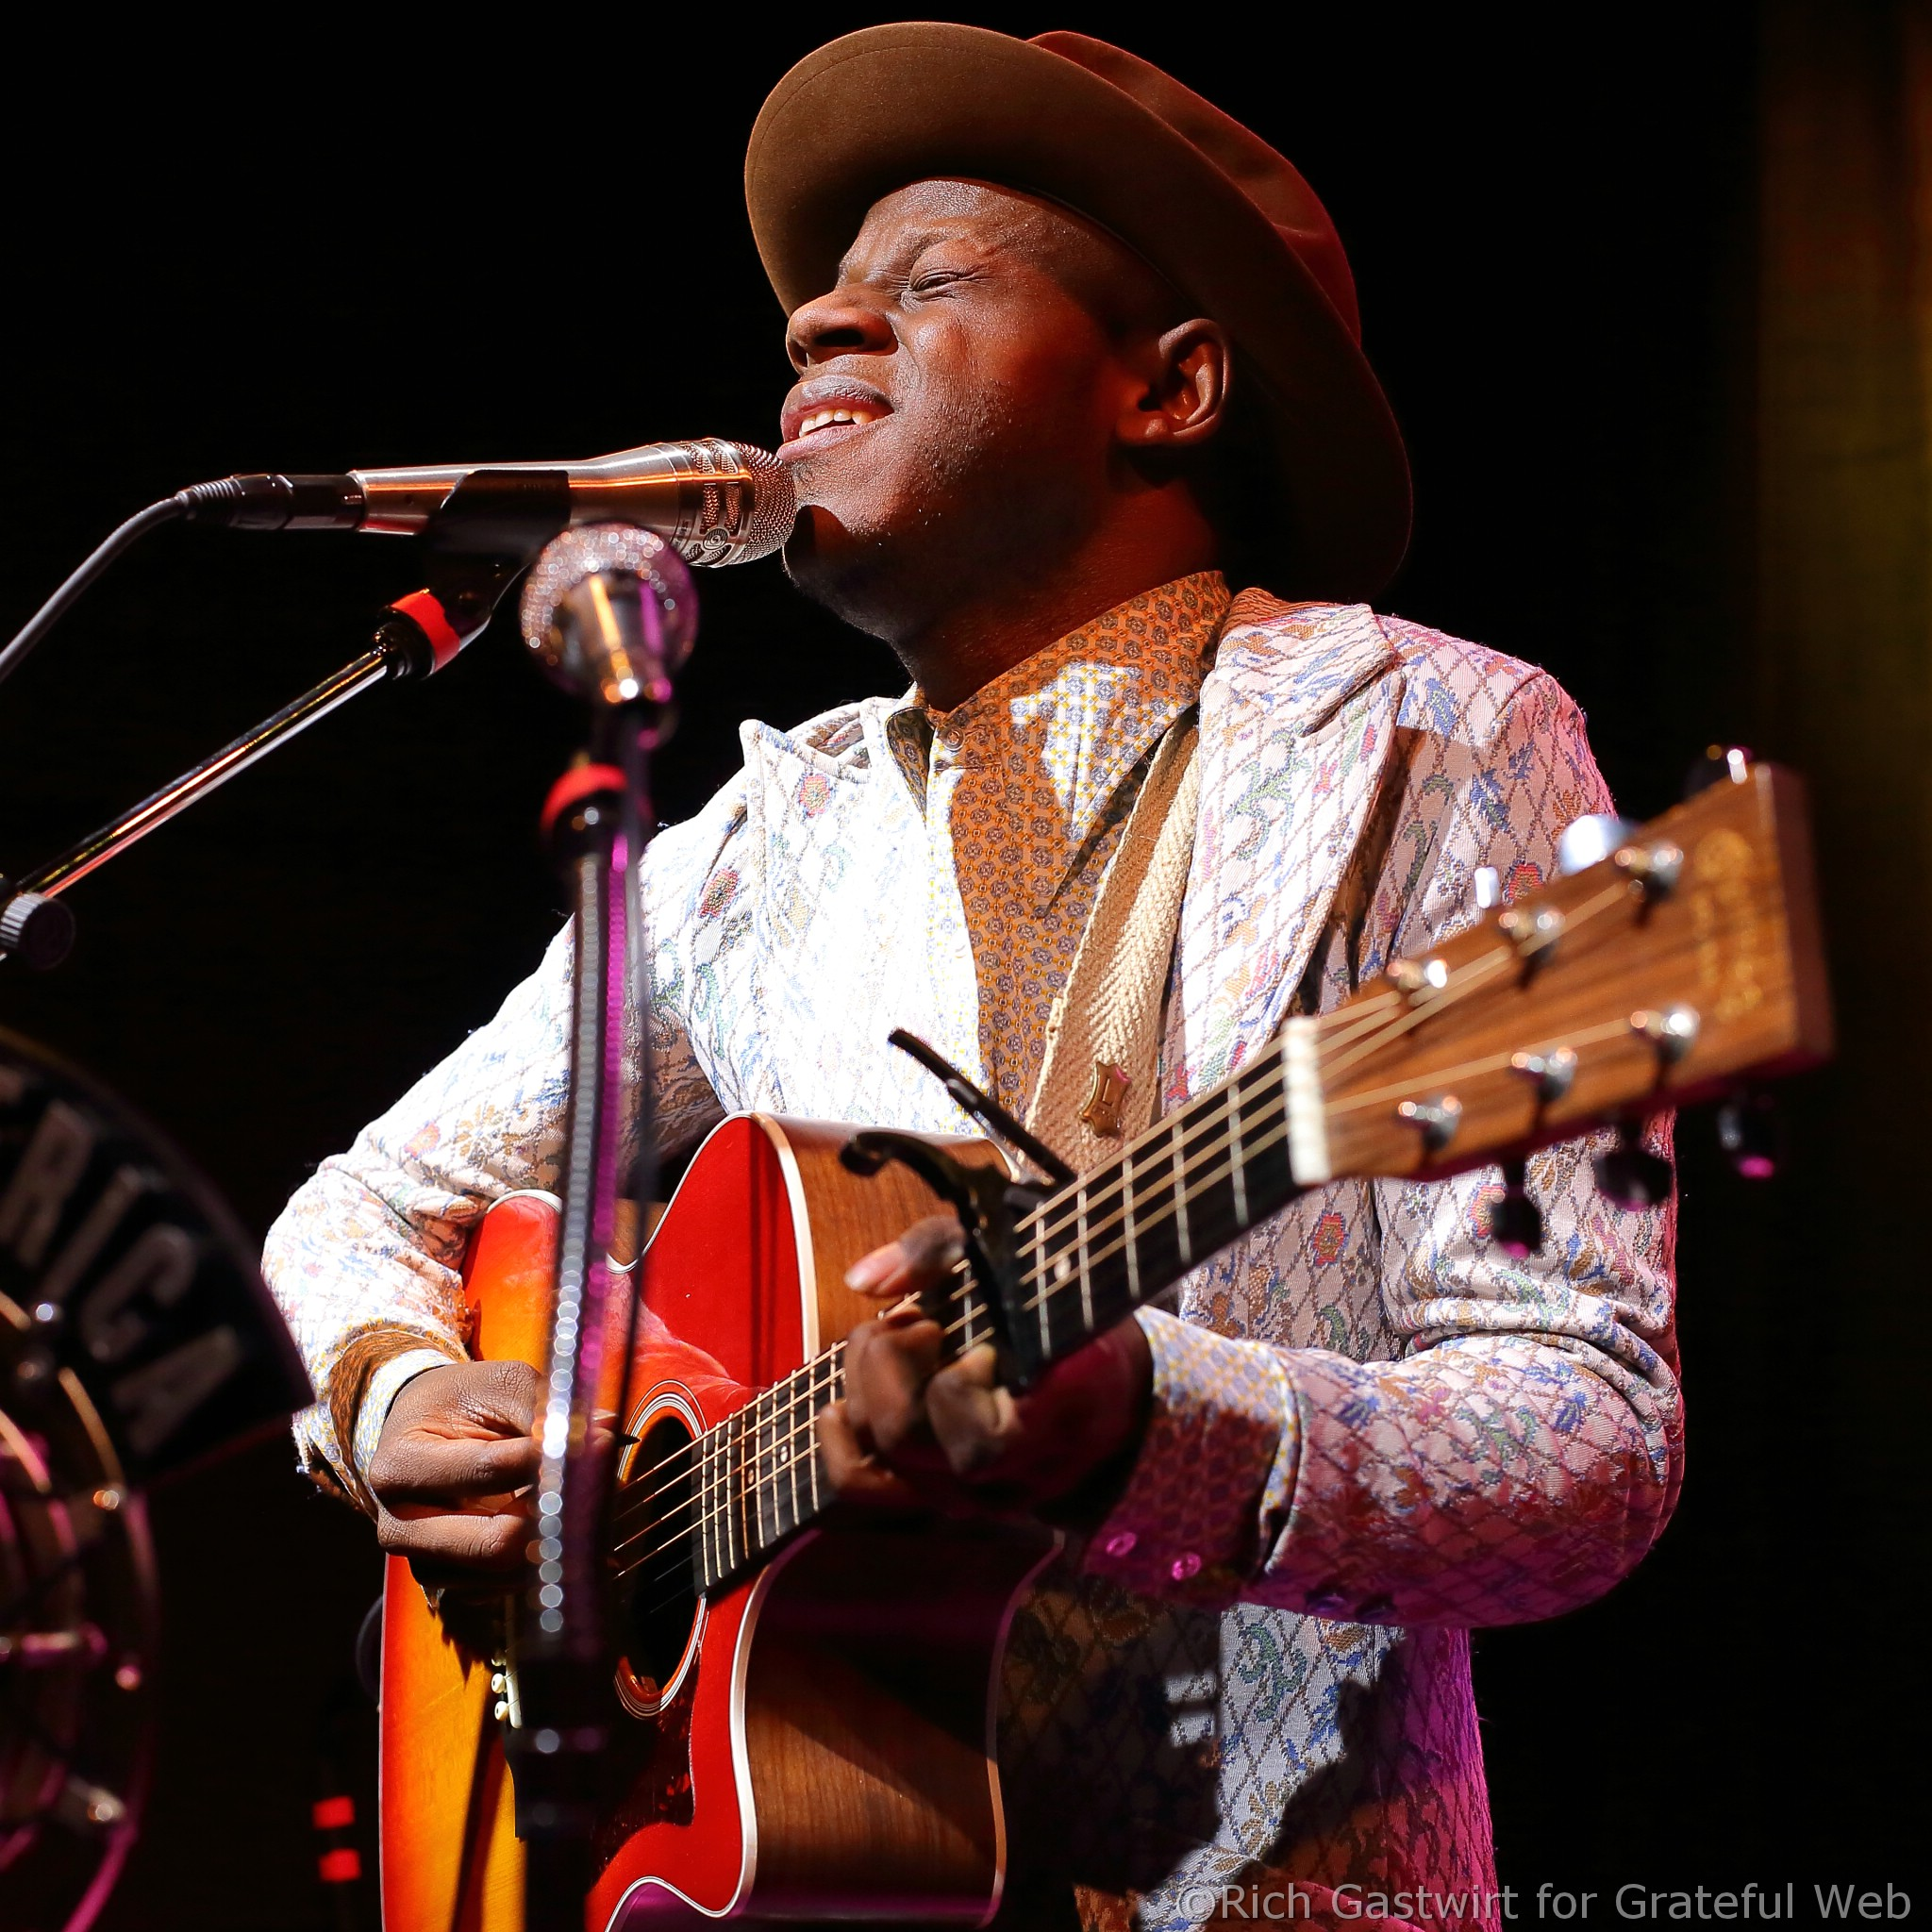 J.S. ONDARA TO JOIN NEIL YOUNG ON TOUR THIS MONTH